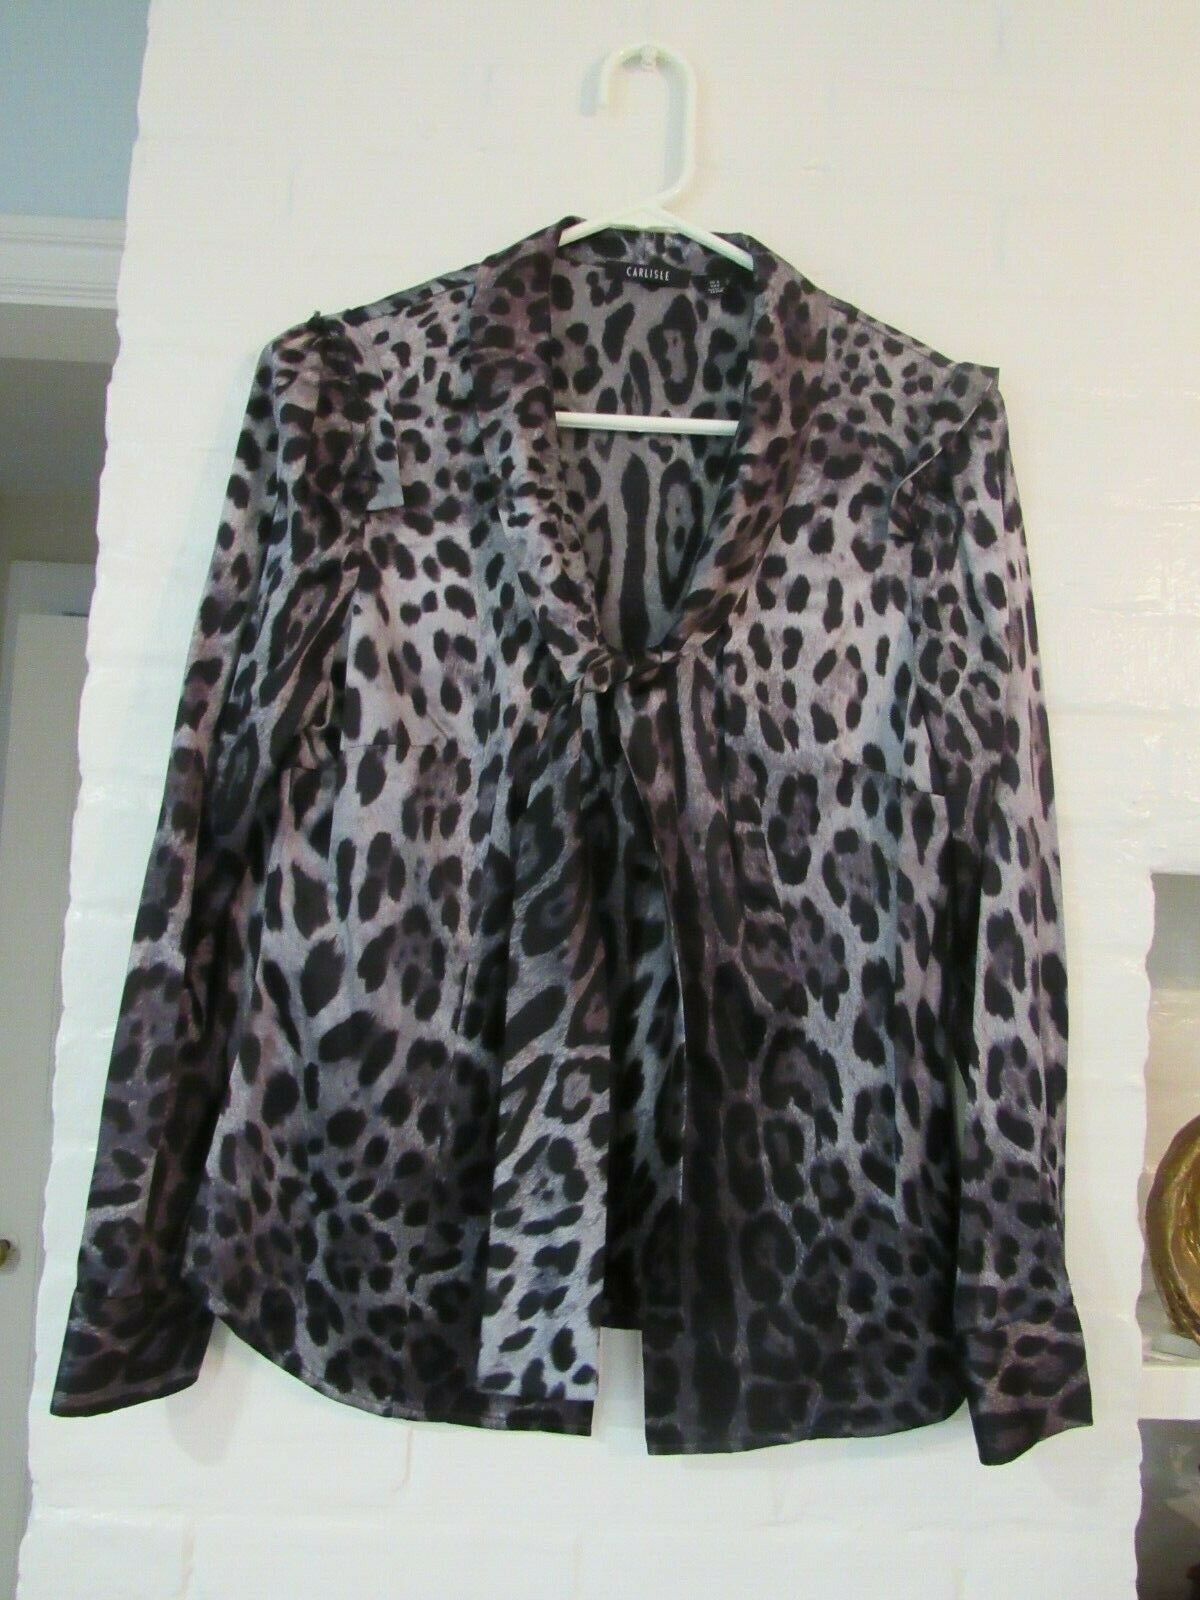 VINTAGE CARLISLE 100% Silk Charmeuse grau Animal Print Tie Blouse Sz 4 NOT WORN